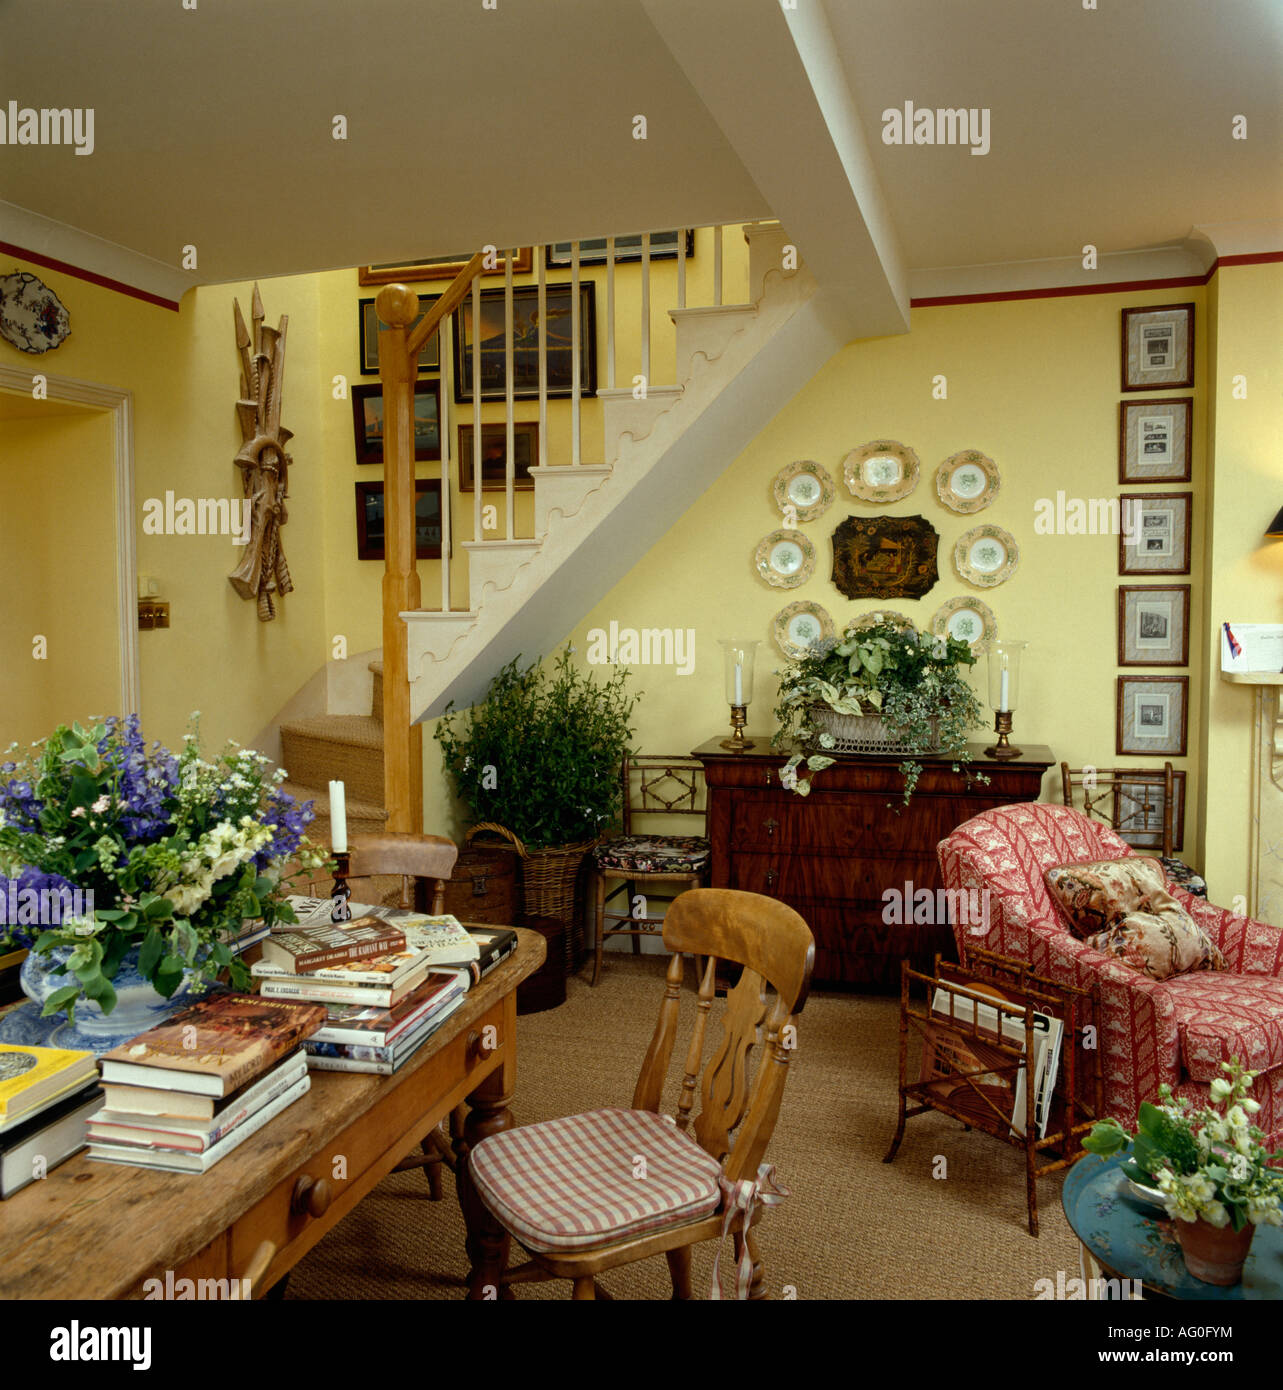 Flower Arrangement And Books On Pine Table In Pastel Yellow Cottage Living  Room Pink Armchair And